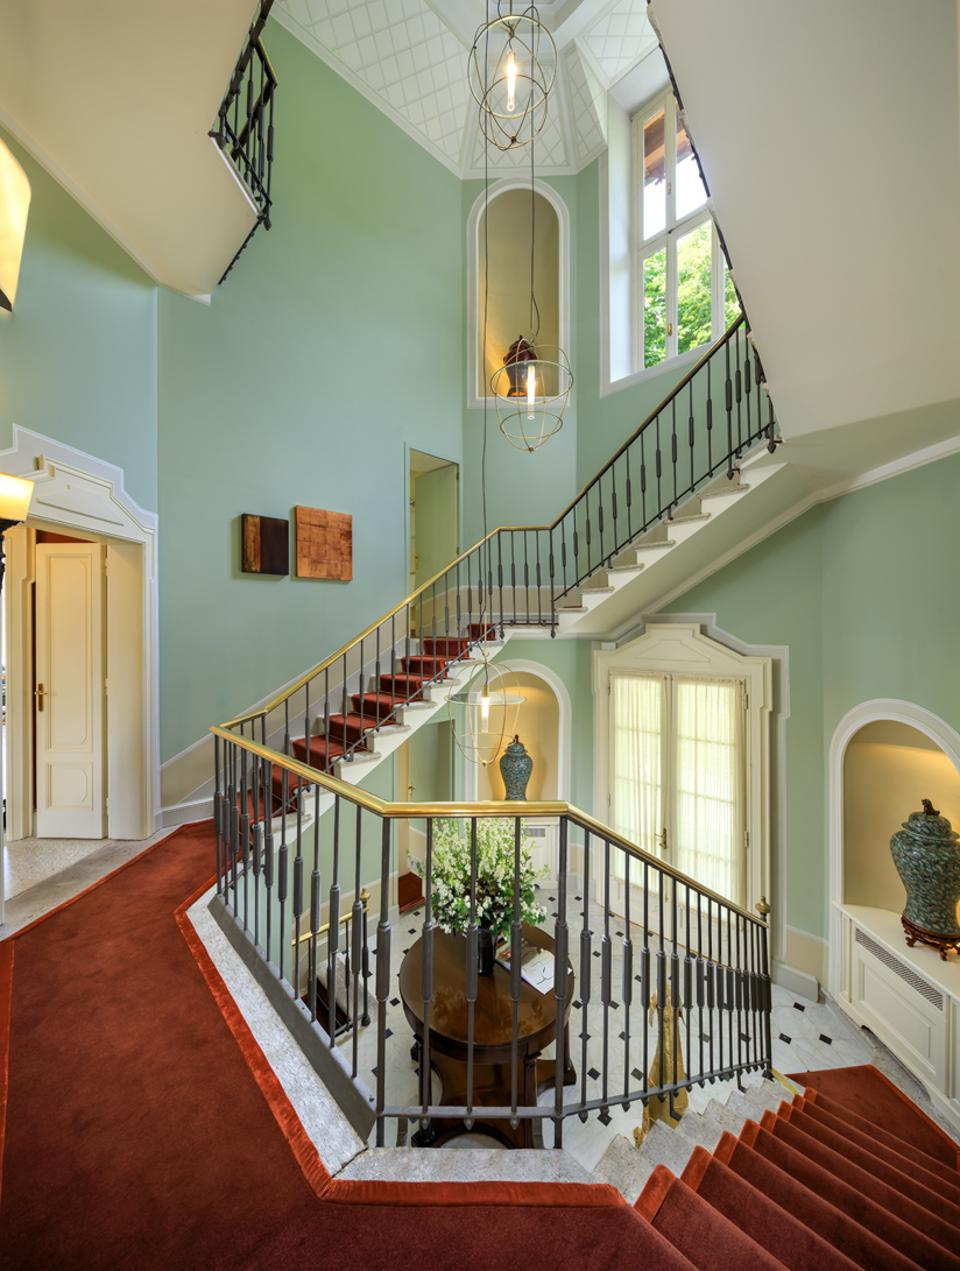 Villa Cima's grand staircase leads up and down to bedrooms and living spaces.